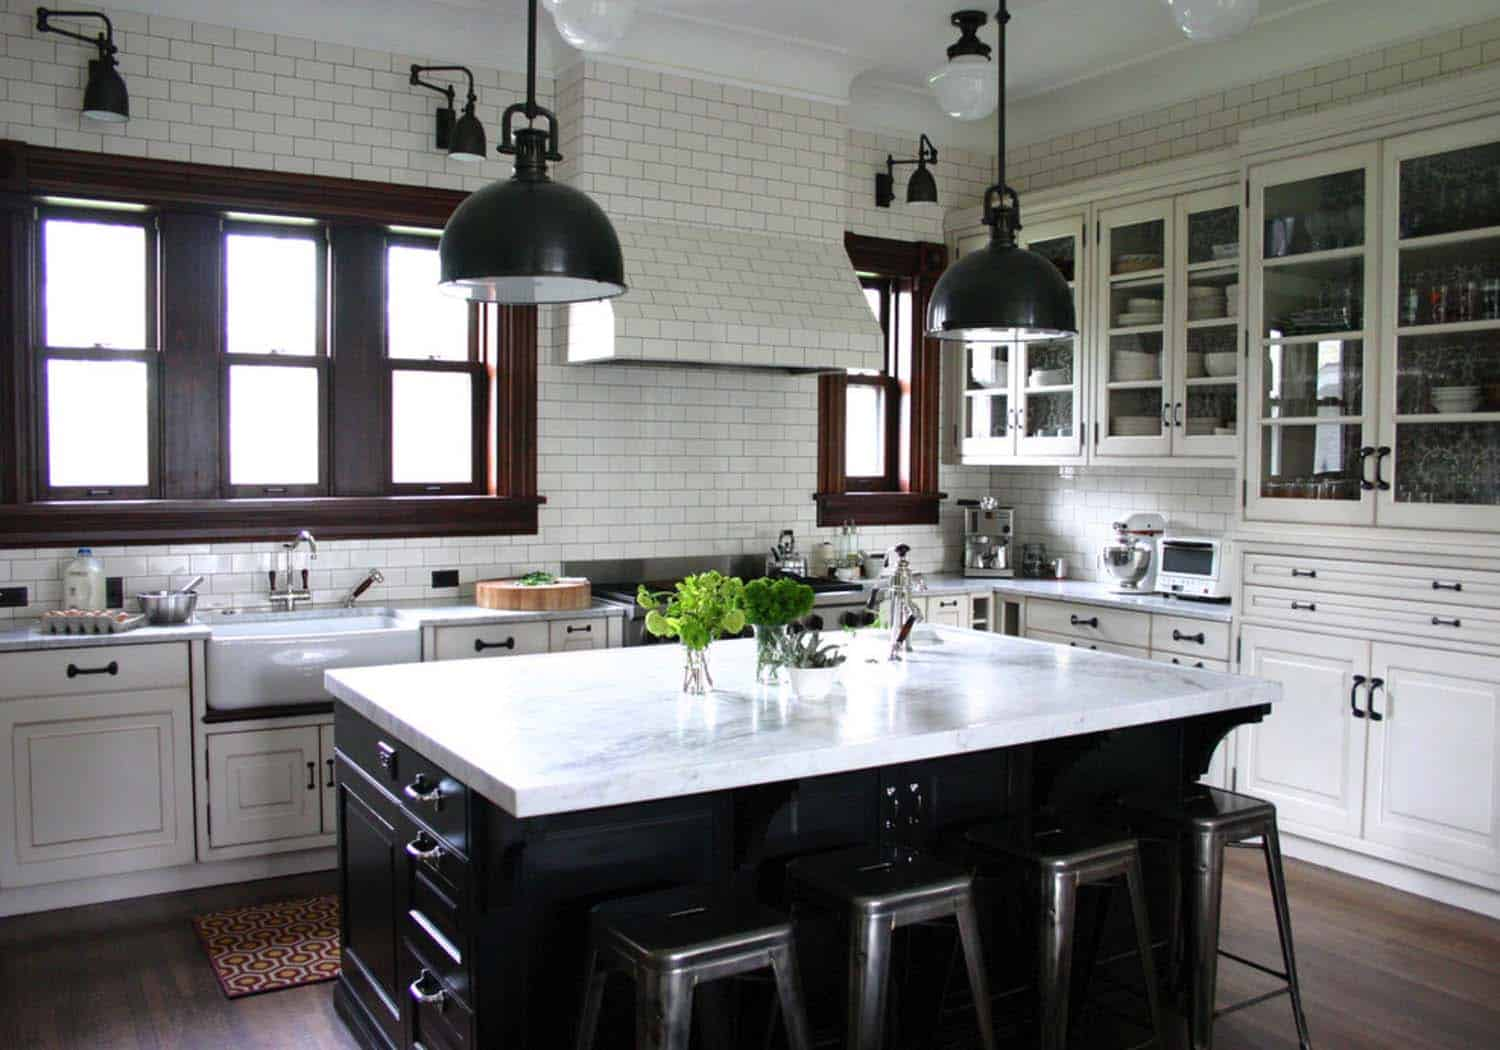 Kitchen Island Ideas-21-1 Kindesign